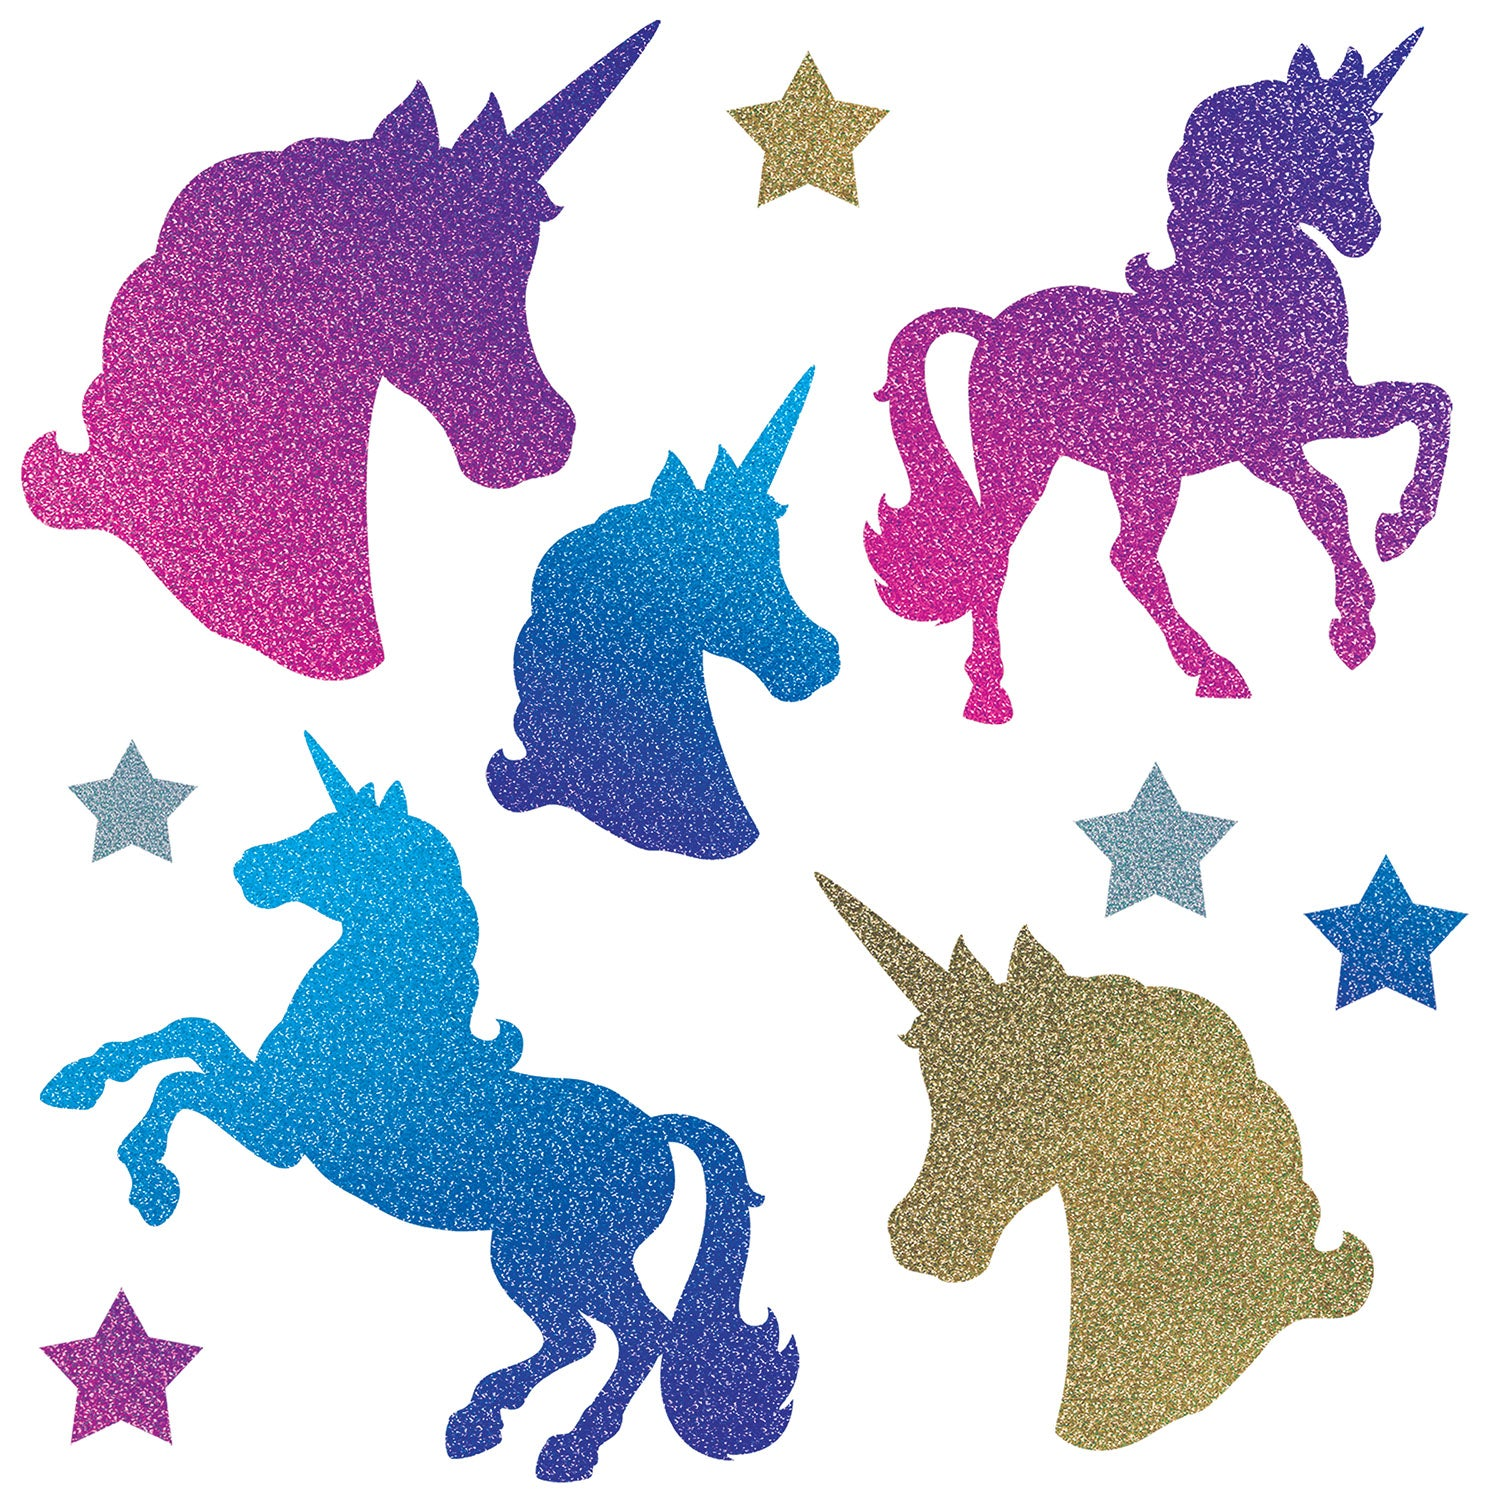 Unicorn Cutouts (10/Pkg) by Beistle - Unicorn Theme Decorations